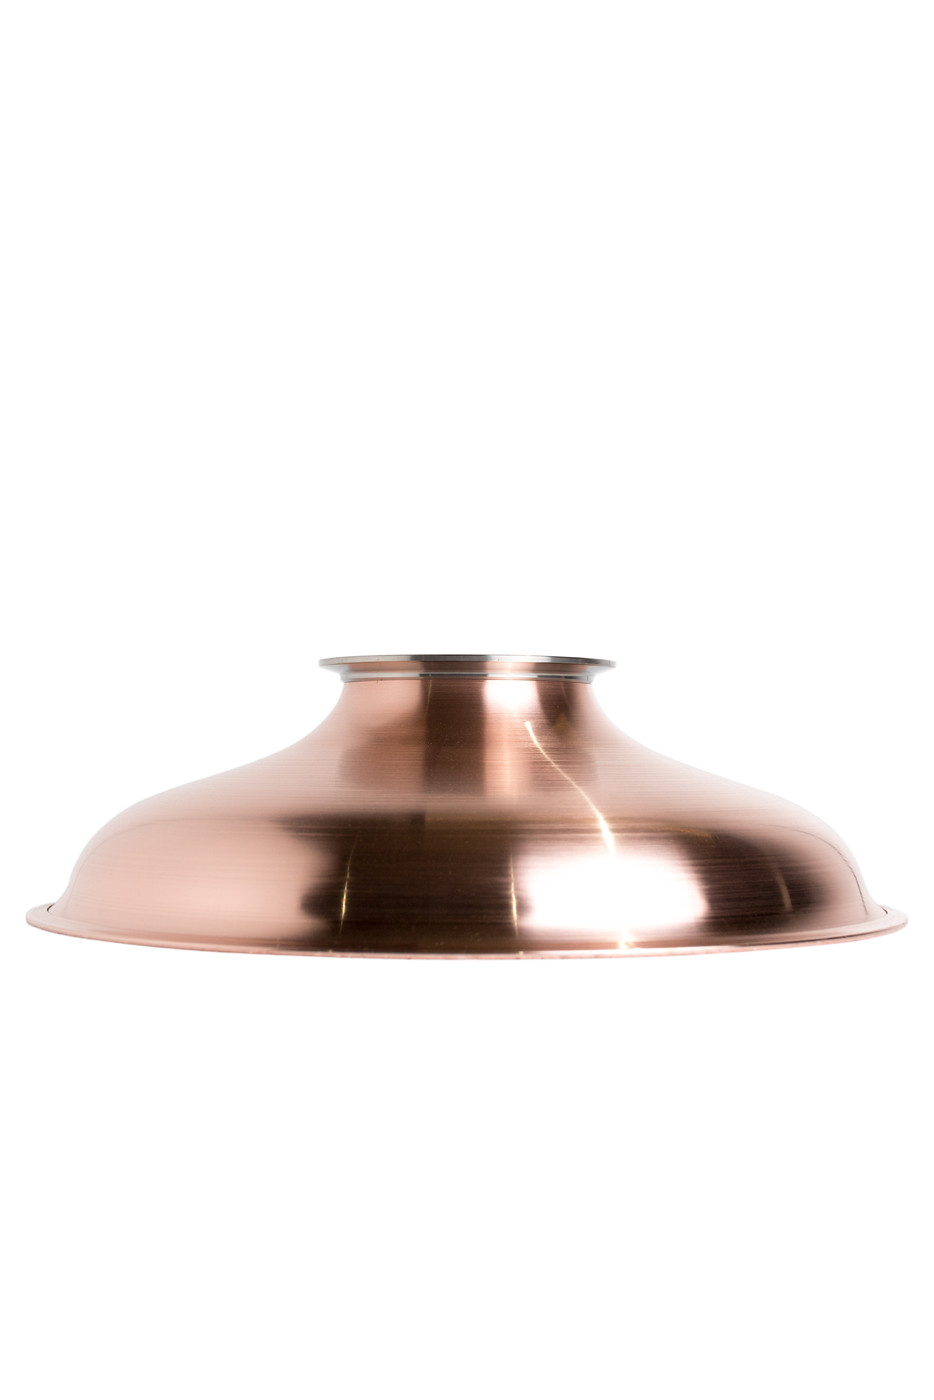 "Copper lid ""Max Cuprum"" for Luxstahl 25l"